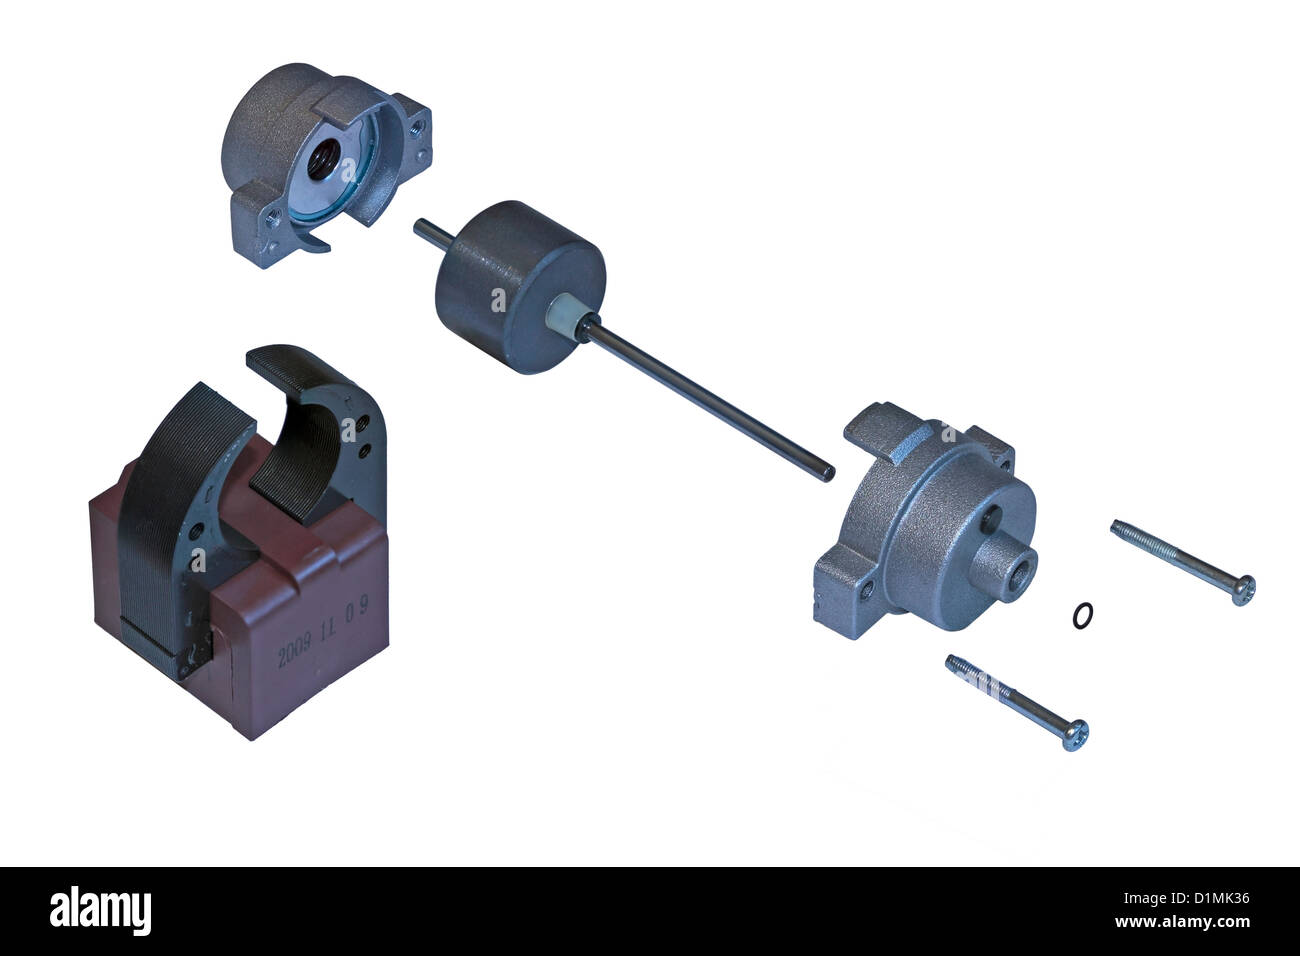 Small Dc Motor Stock Photos & Small Dc Motor Stock Images - Alamy